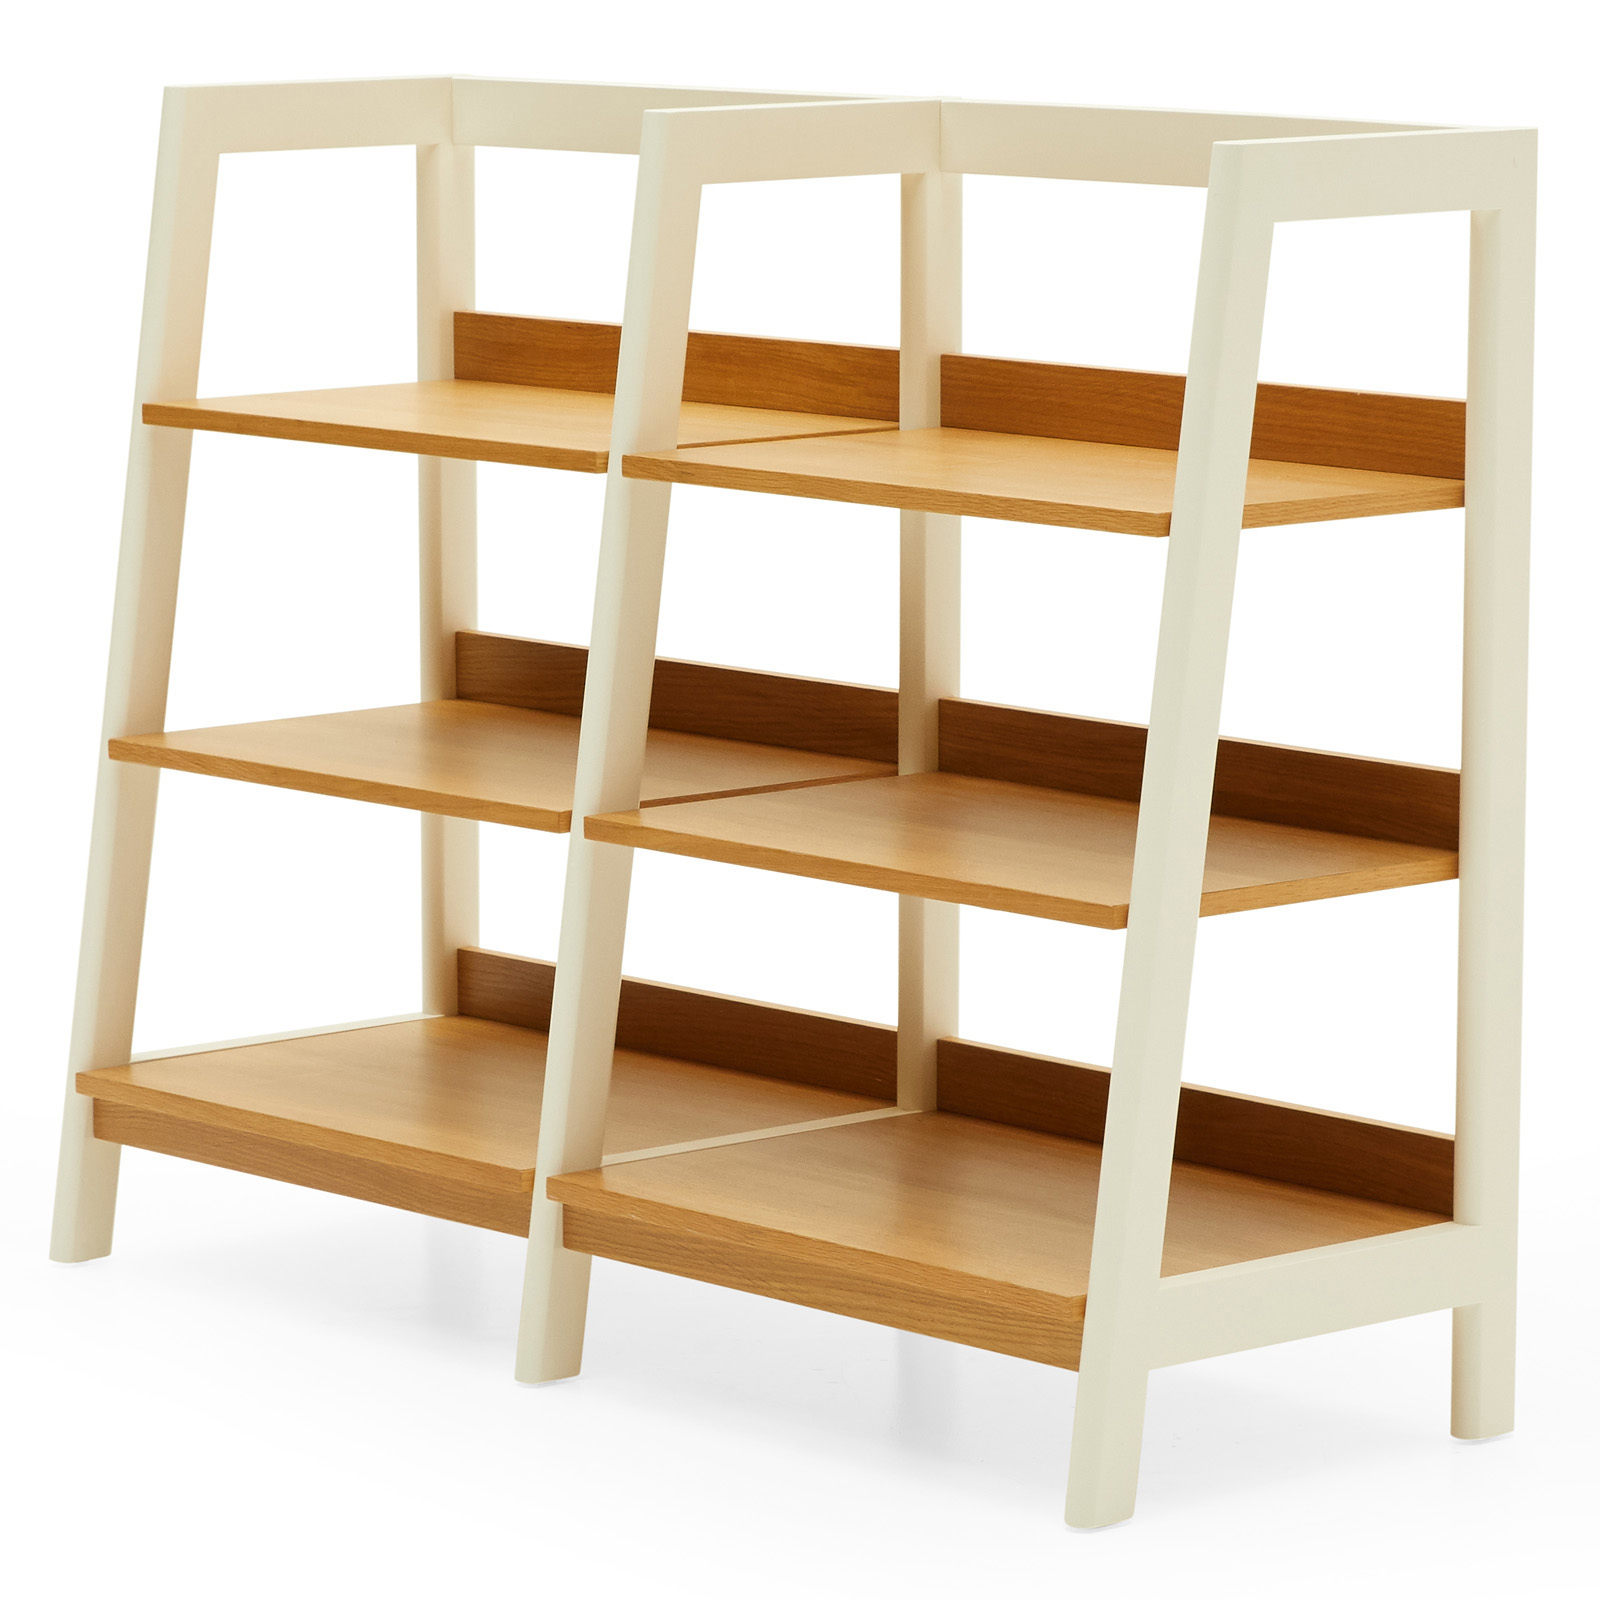 Widely Used Modrn Scandinavian Finna Wide Ladder Bookcase Inside Wide Ladder Bookcases (View 19 of 20)